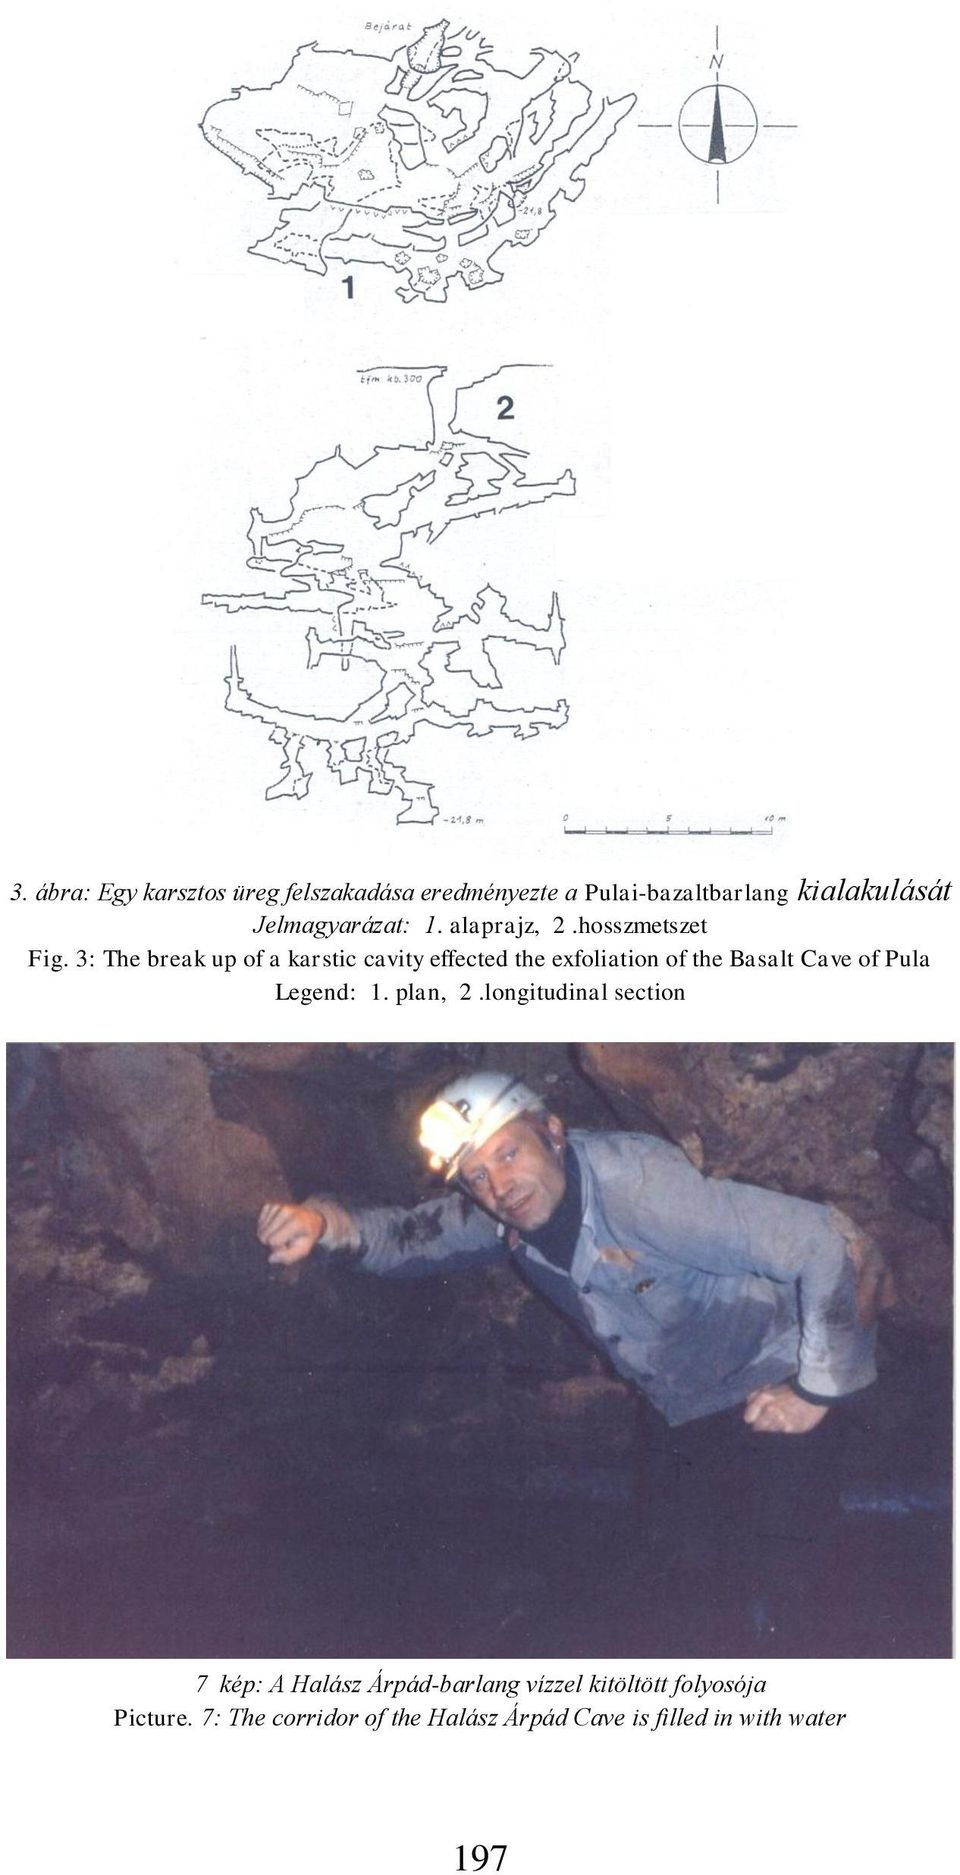 3: The break up of a karstic cavity effected the exfoliation of the Basalt Cave of Pula Legend: 1.